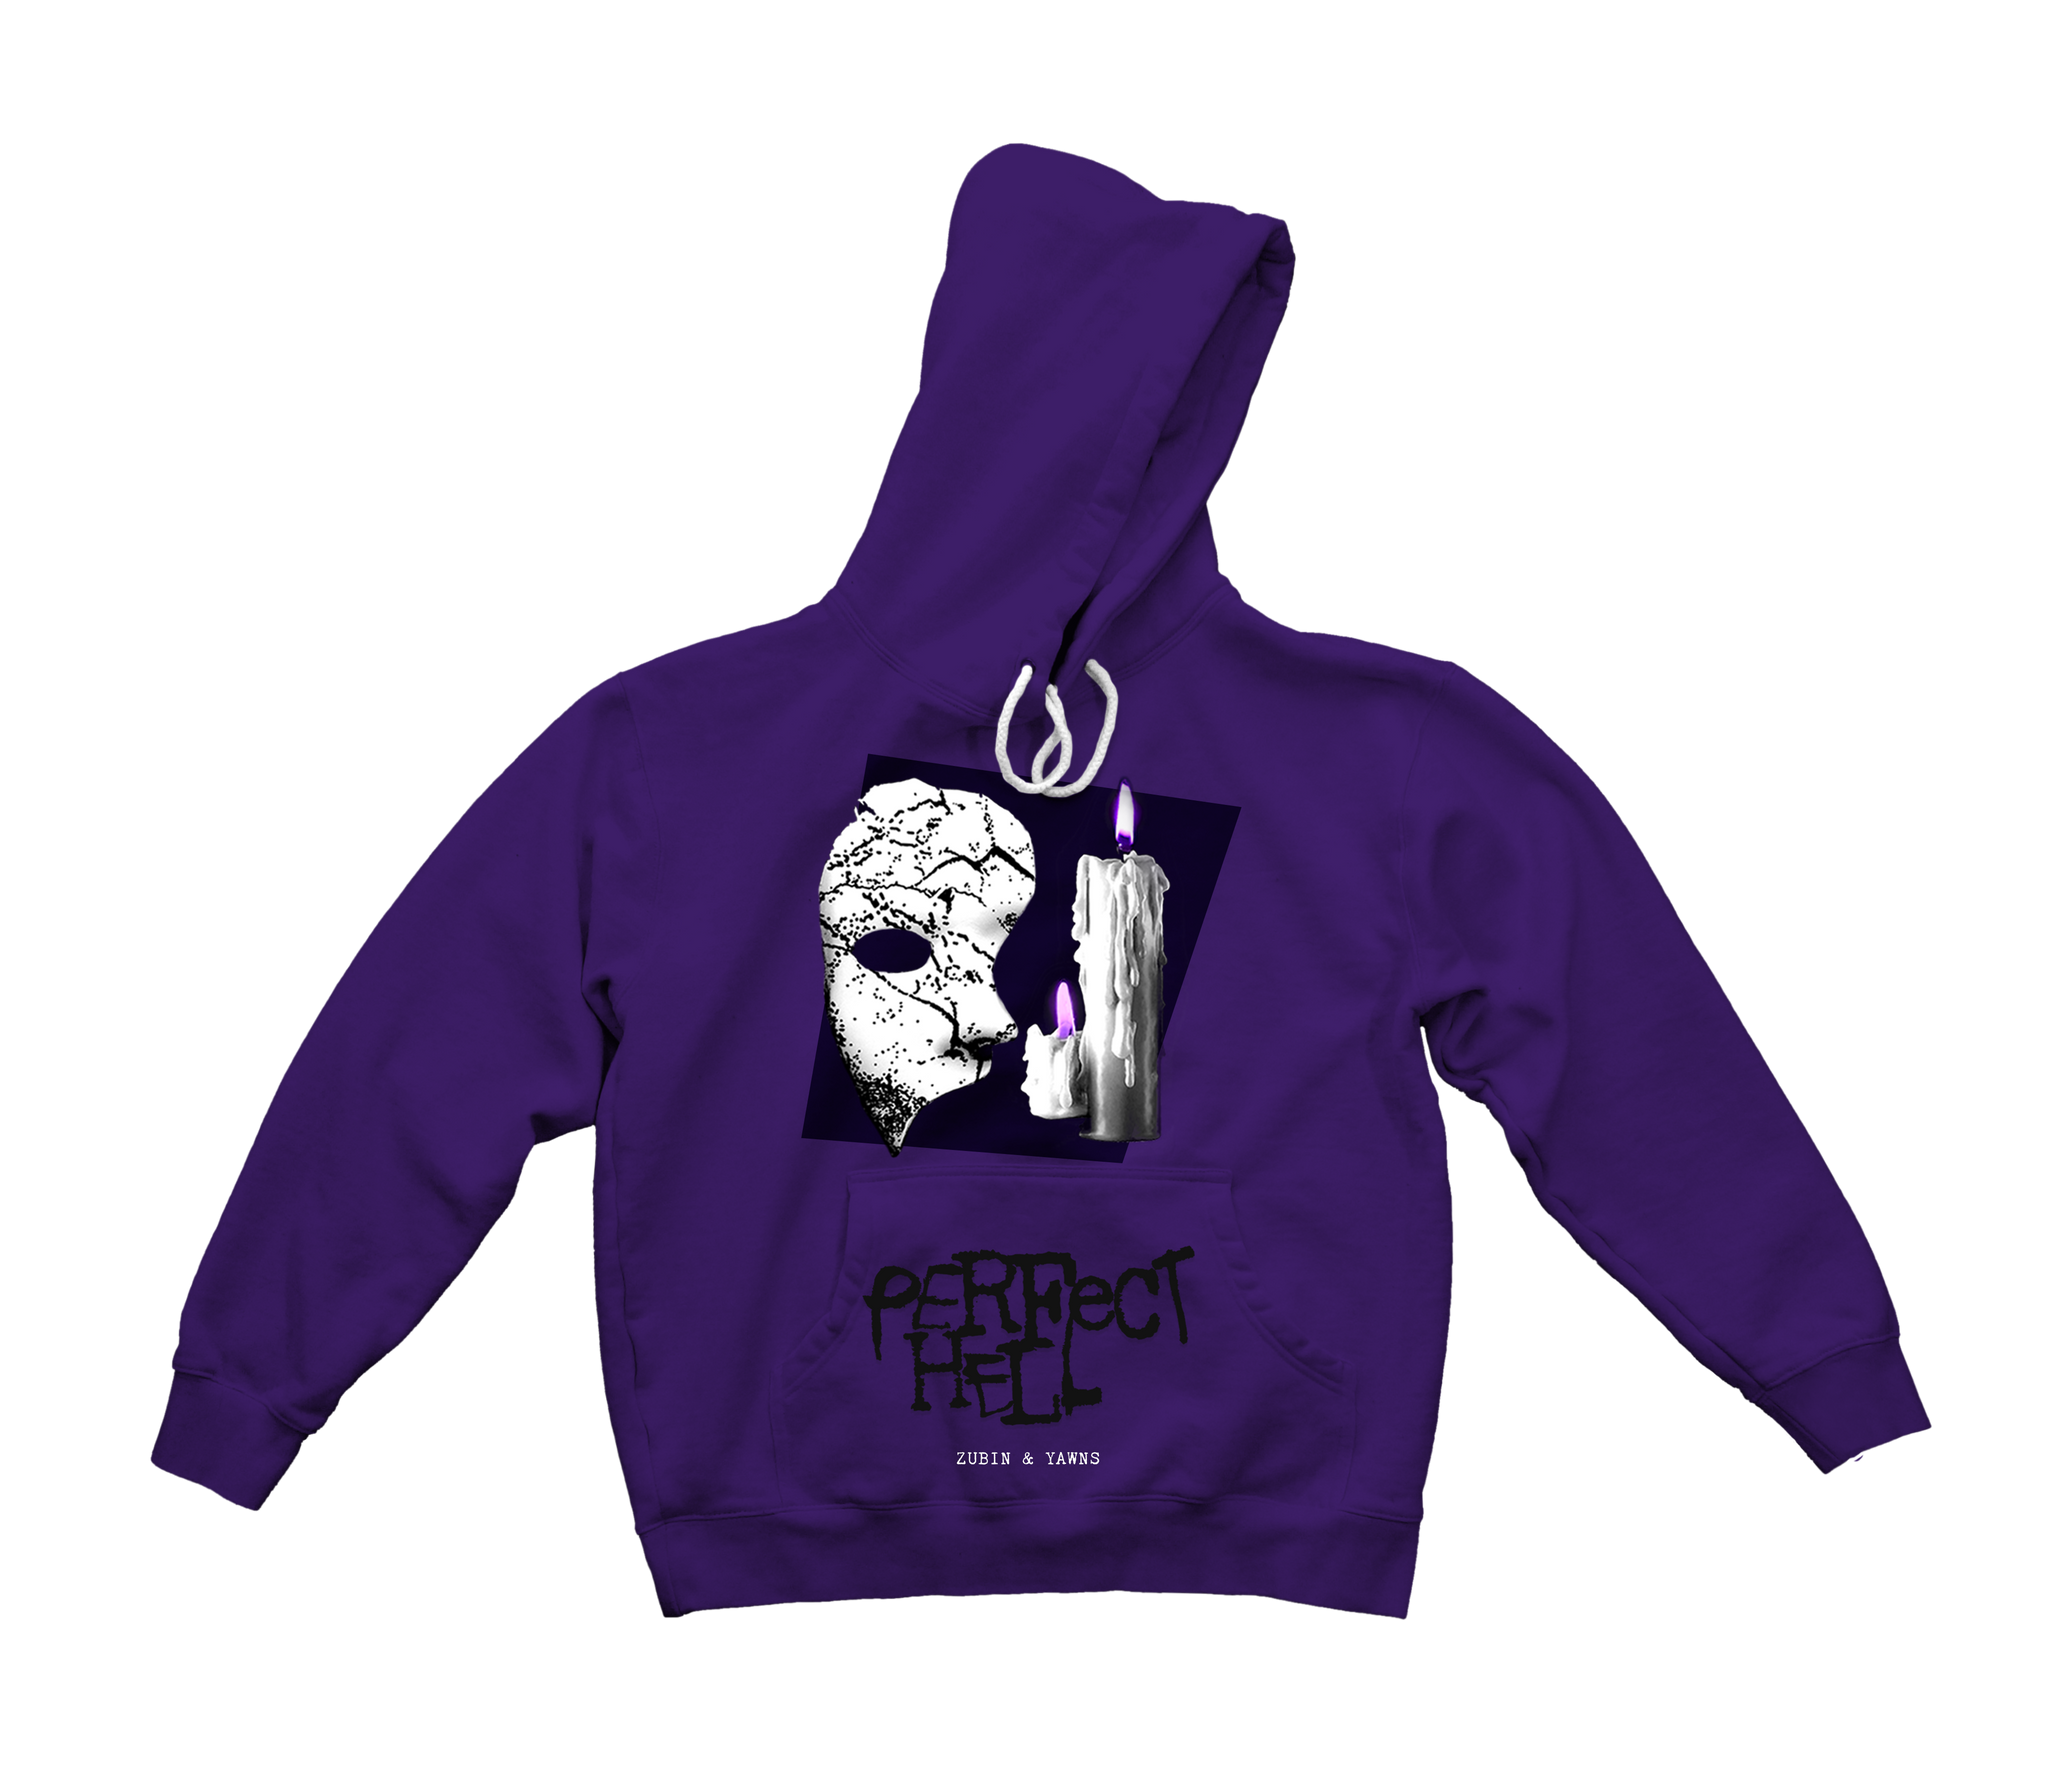 Zubin x Yawns - Perfect Hell Hooded Sweatshirt (Purple) *PREORDER*